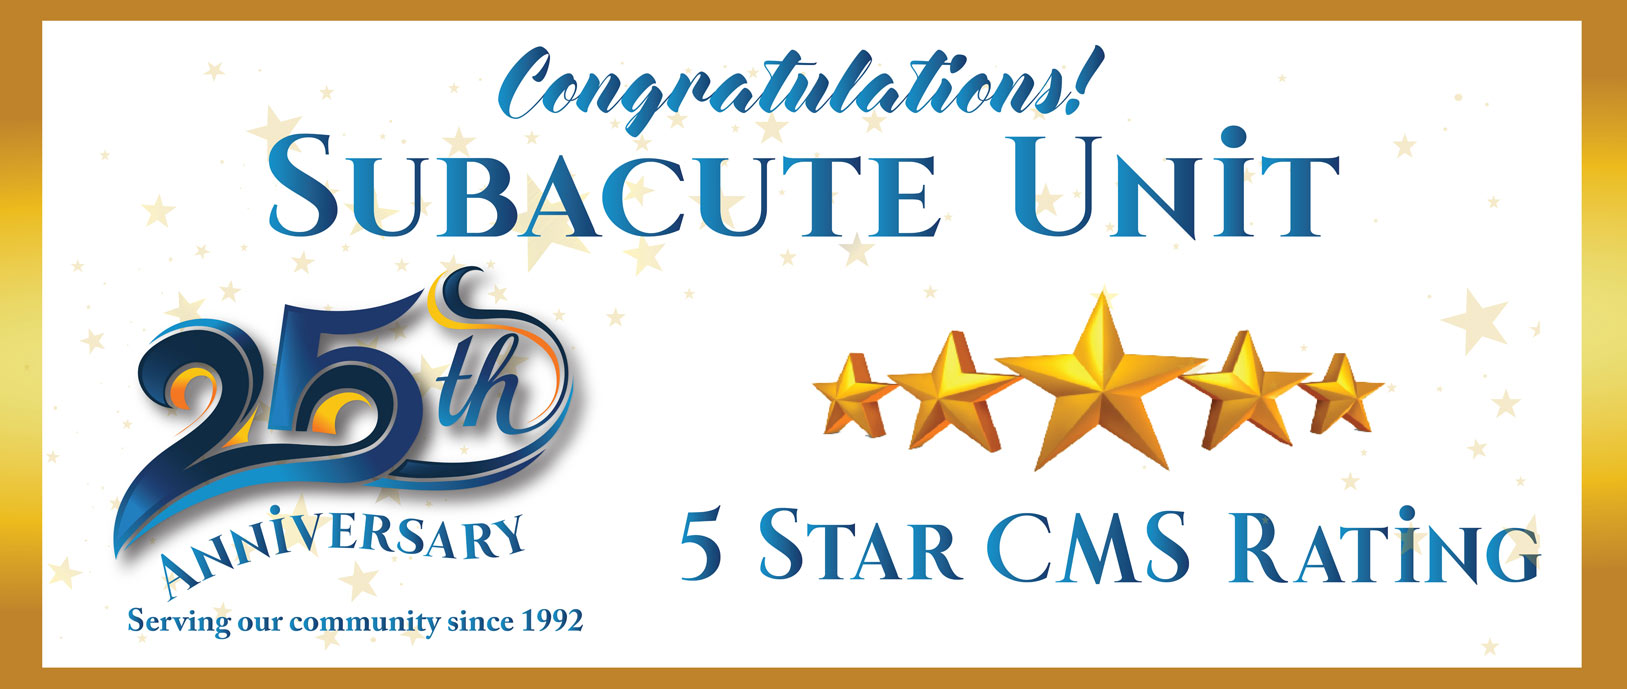 Congratulations Subacute unit, 25th anniversary , 5 star CMS Rating with 5 golden stars